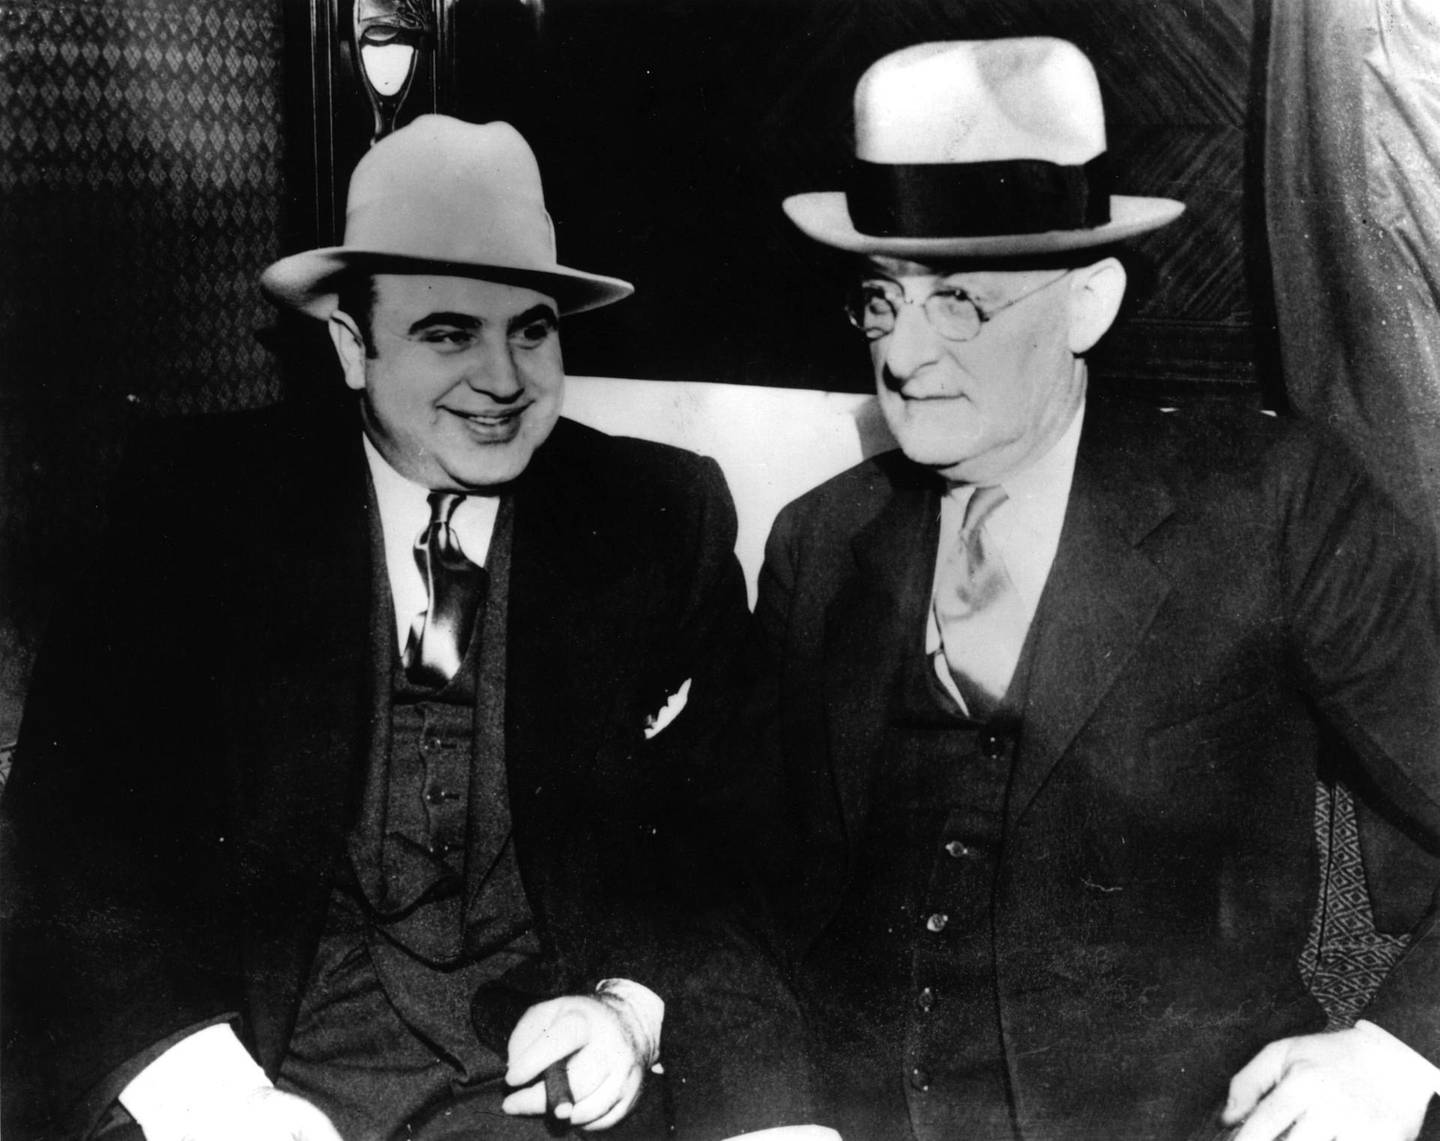 American gangster Al Capone (1899 - 1947) with US Marshall Laubenheimar.  Original Publication: People Disc - HC0216   (Photo by Keystone/Getty Images)